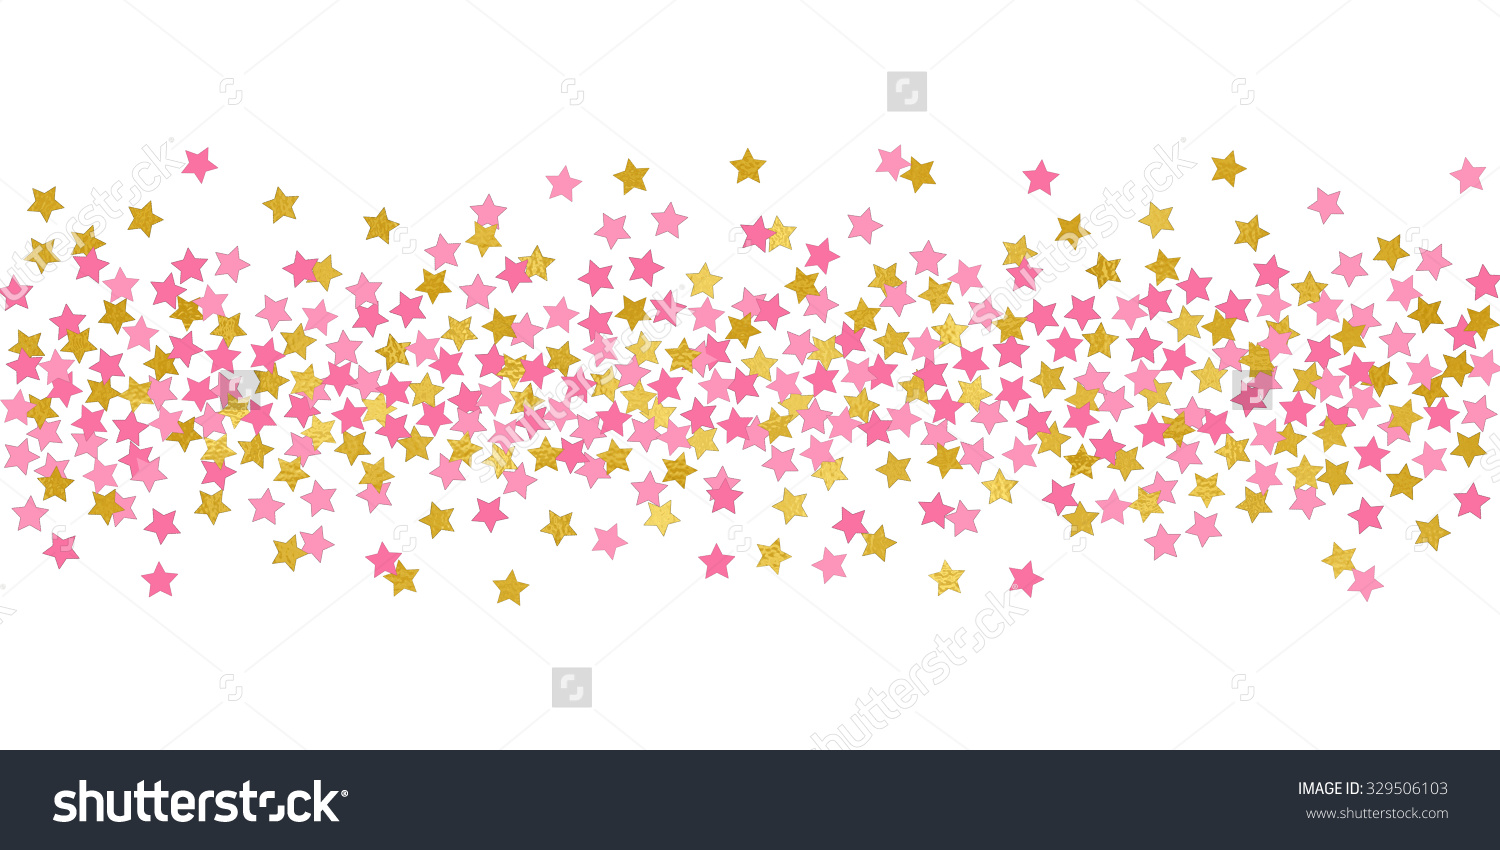 Background clipart sparkle. Light borders gold glitter